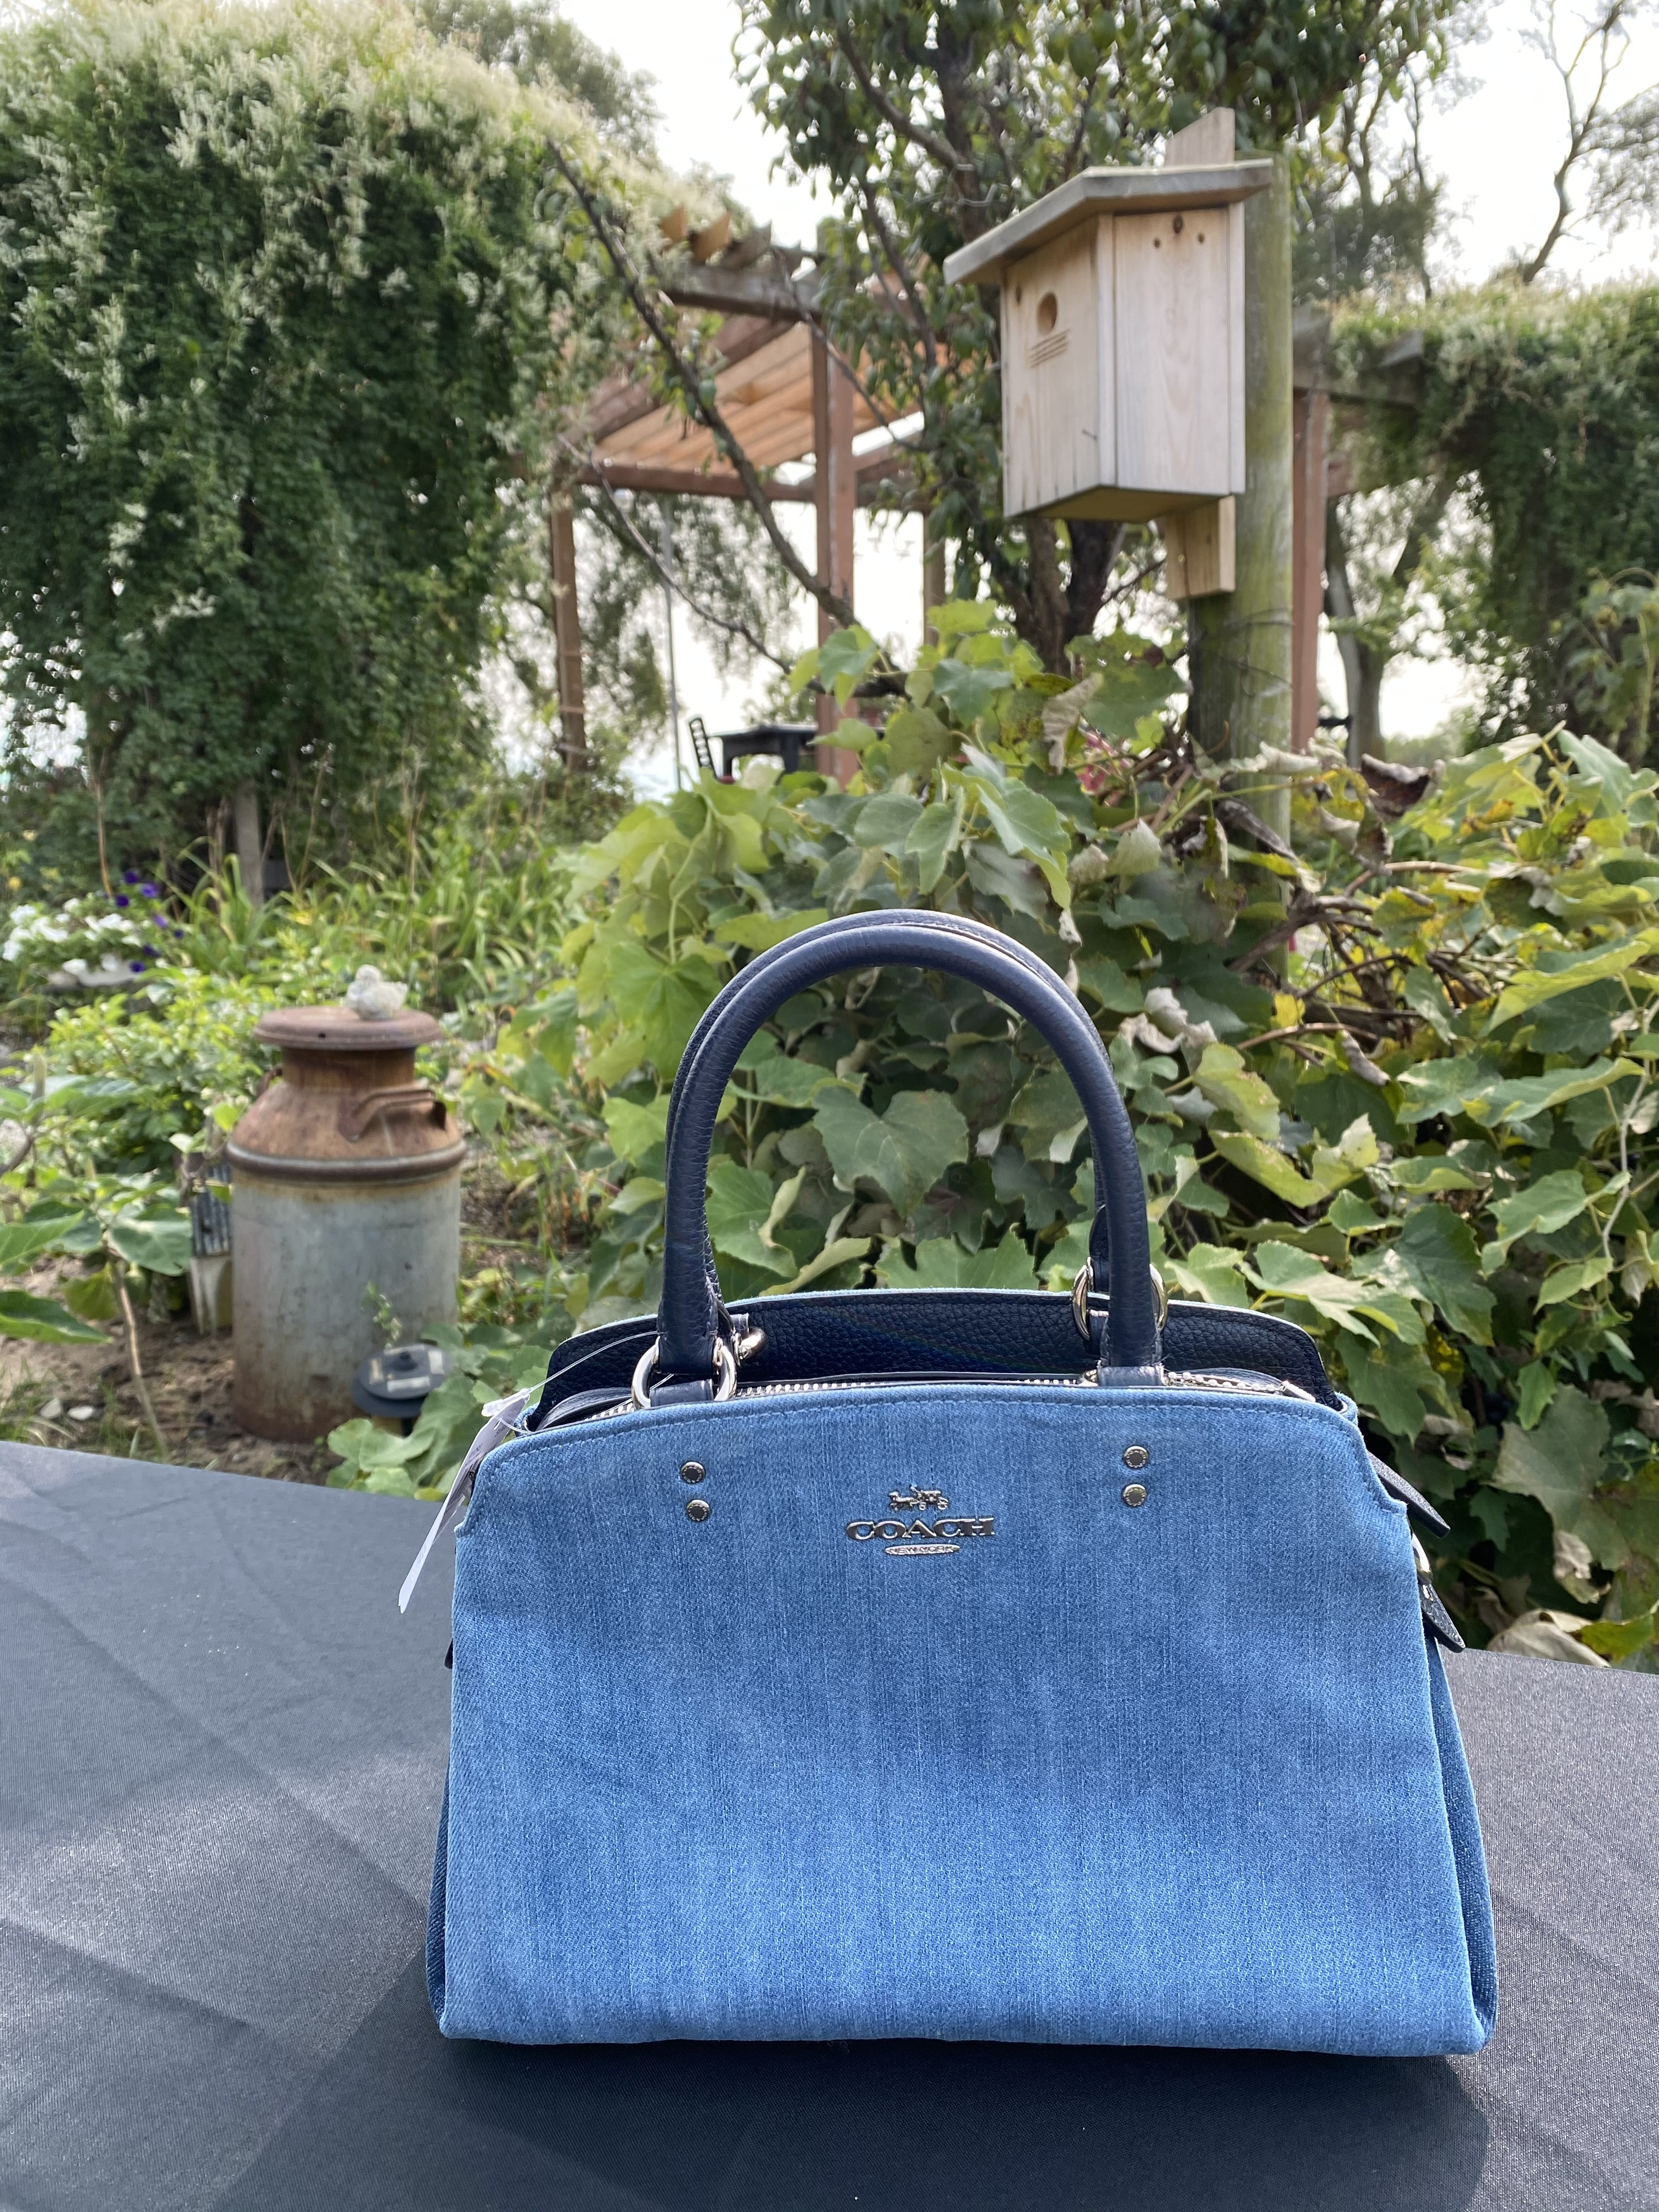 #2 Coach Denim Satchel